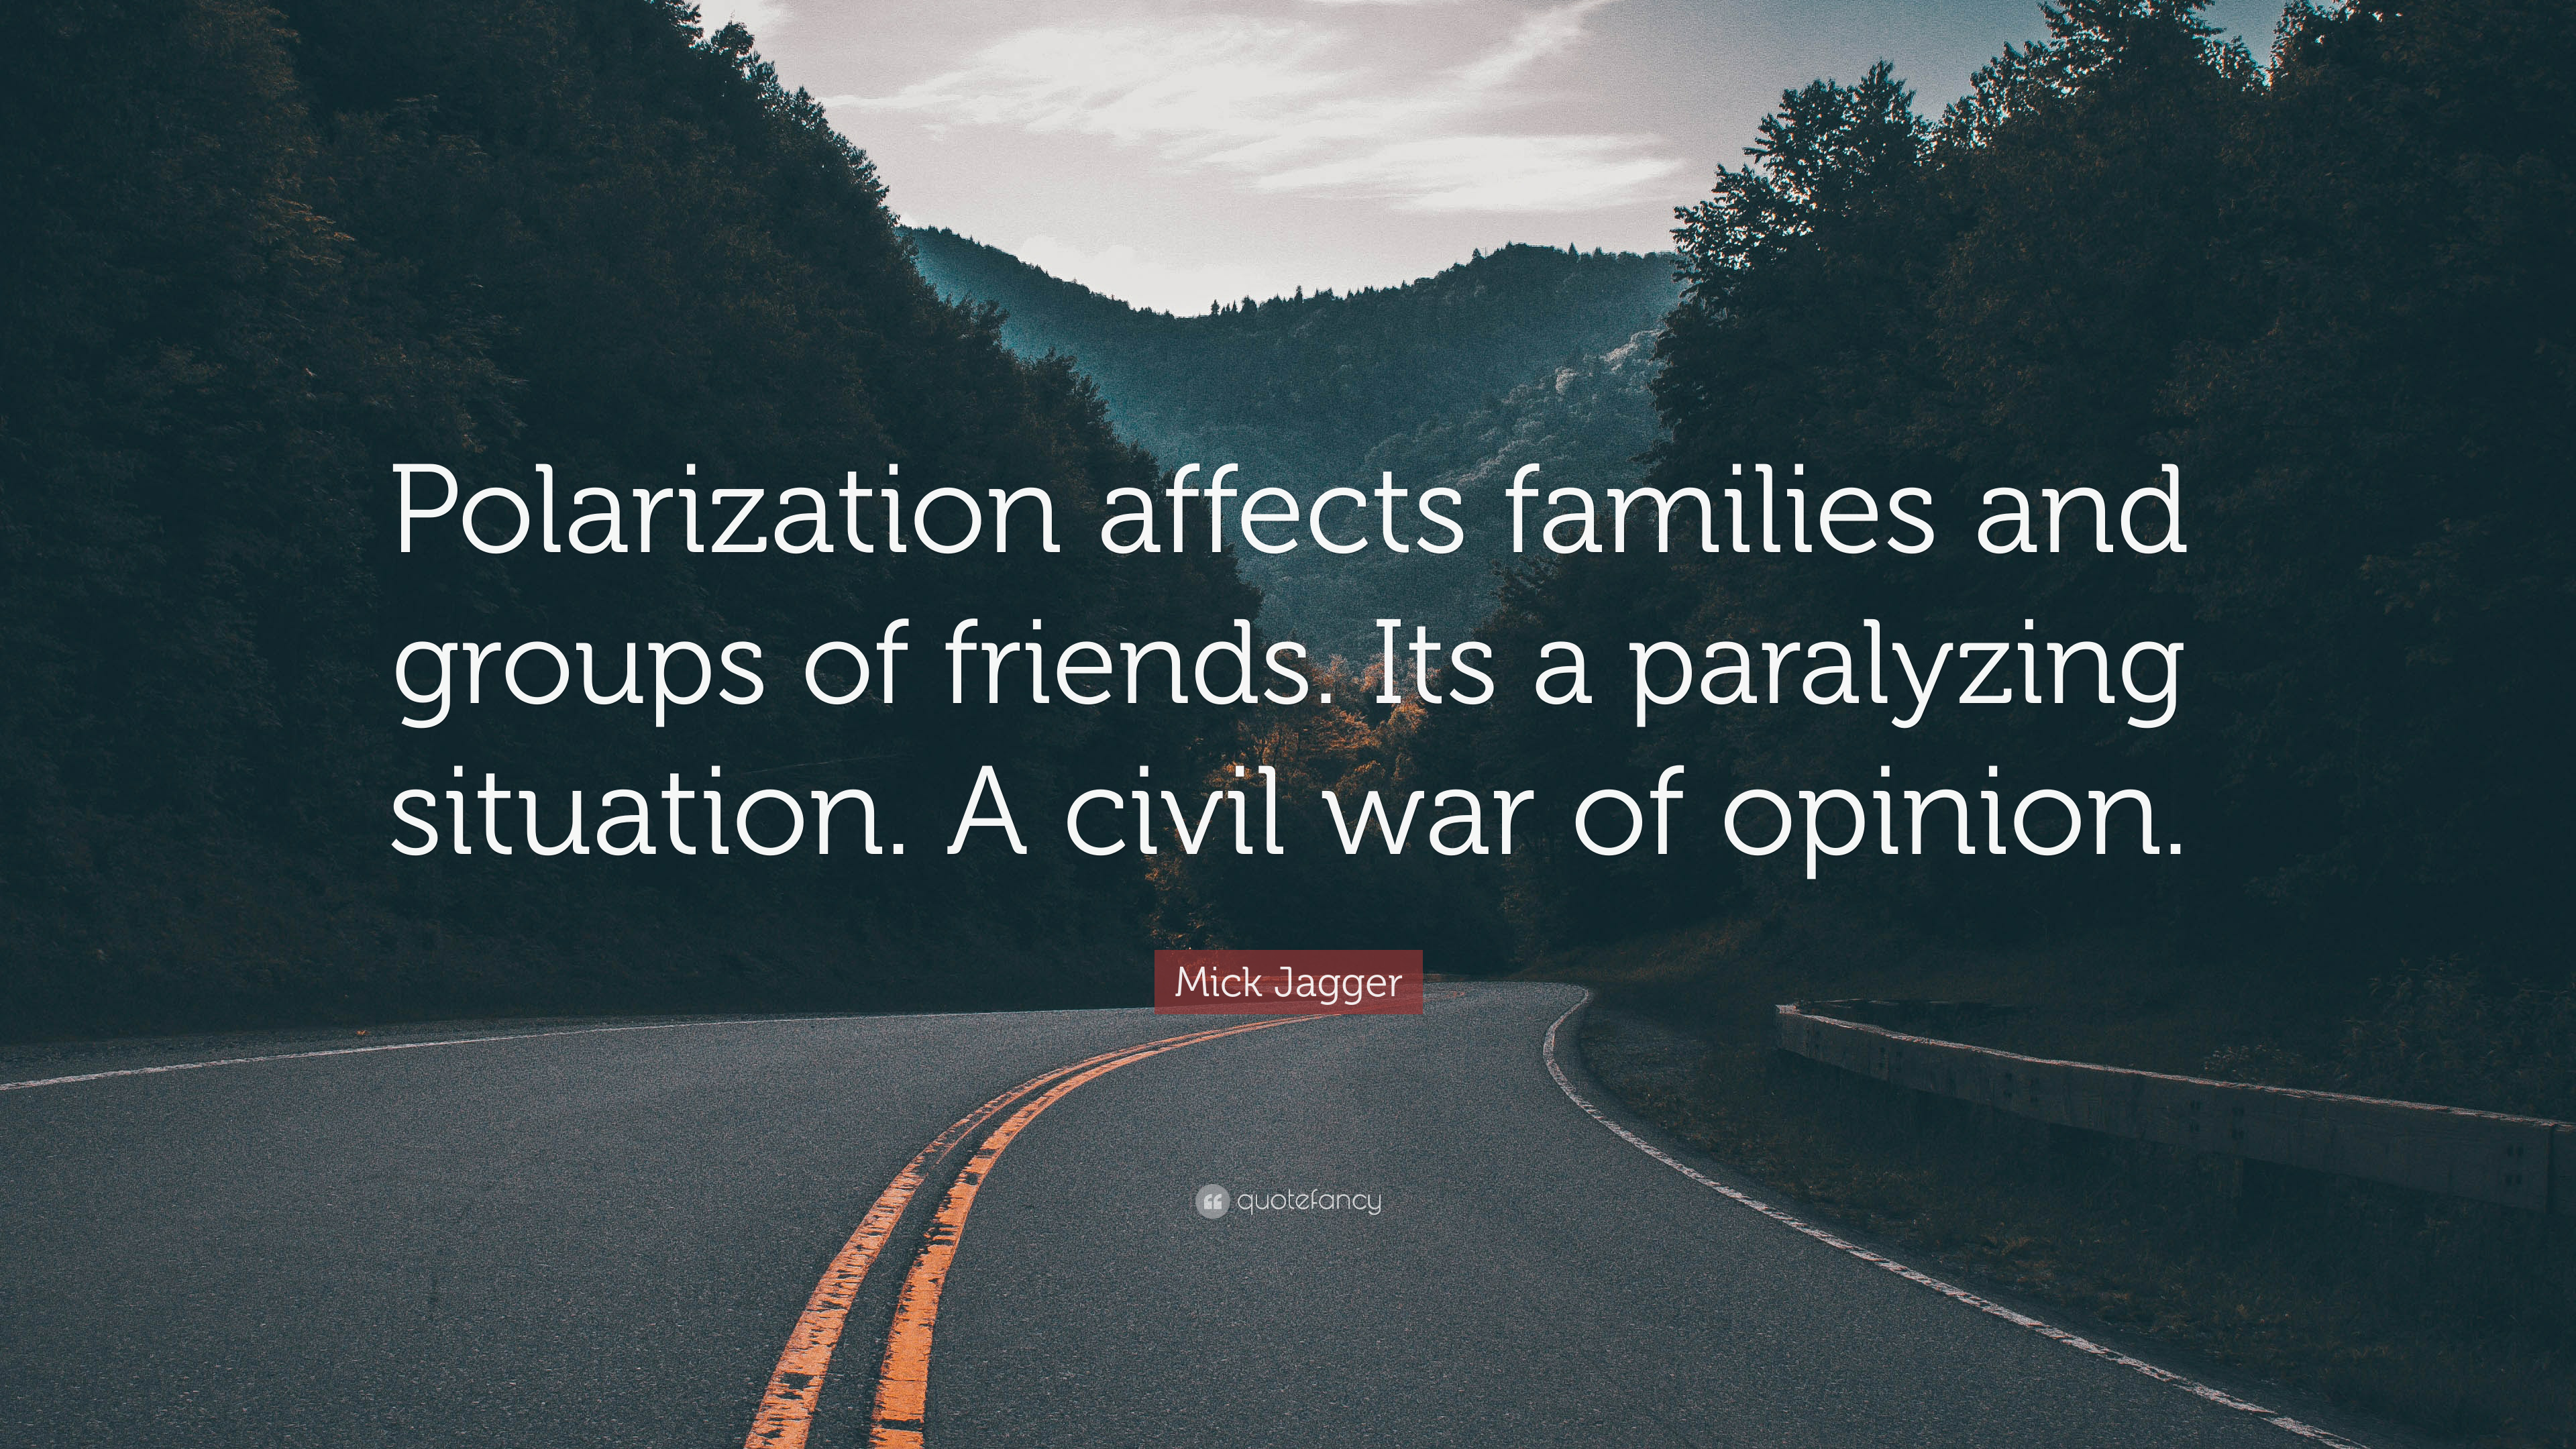 """Polarization aff, < cts fam111es and groups of fr1ends~§ s a paralyzing ~ I. 1 a r situation. A civil war of opinion I l .in . A») .Mgpmr-ga—qum' .»-« ' A r r?"""" W A """"53> '9' We."""" '  .I -. ' 1-2;, . 5"""" '5', TN l. """"a; https://inspirational.ly"""